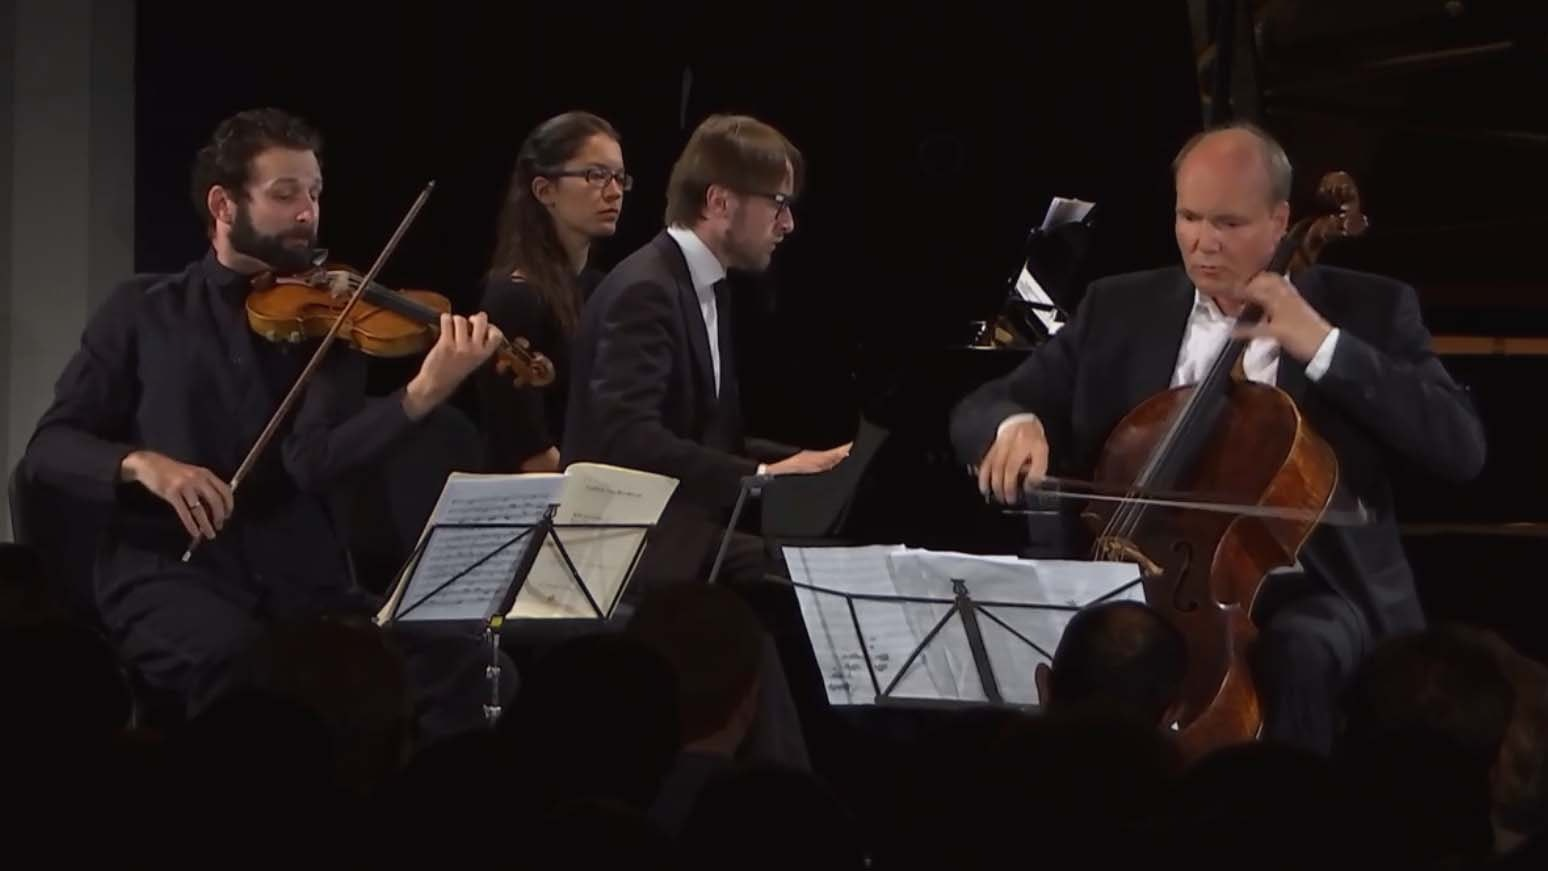 Ilya Gringolts, Truls Mørk and Daniil Trifonov perform Beethoven, Schubert, and Brahms